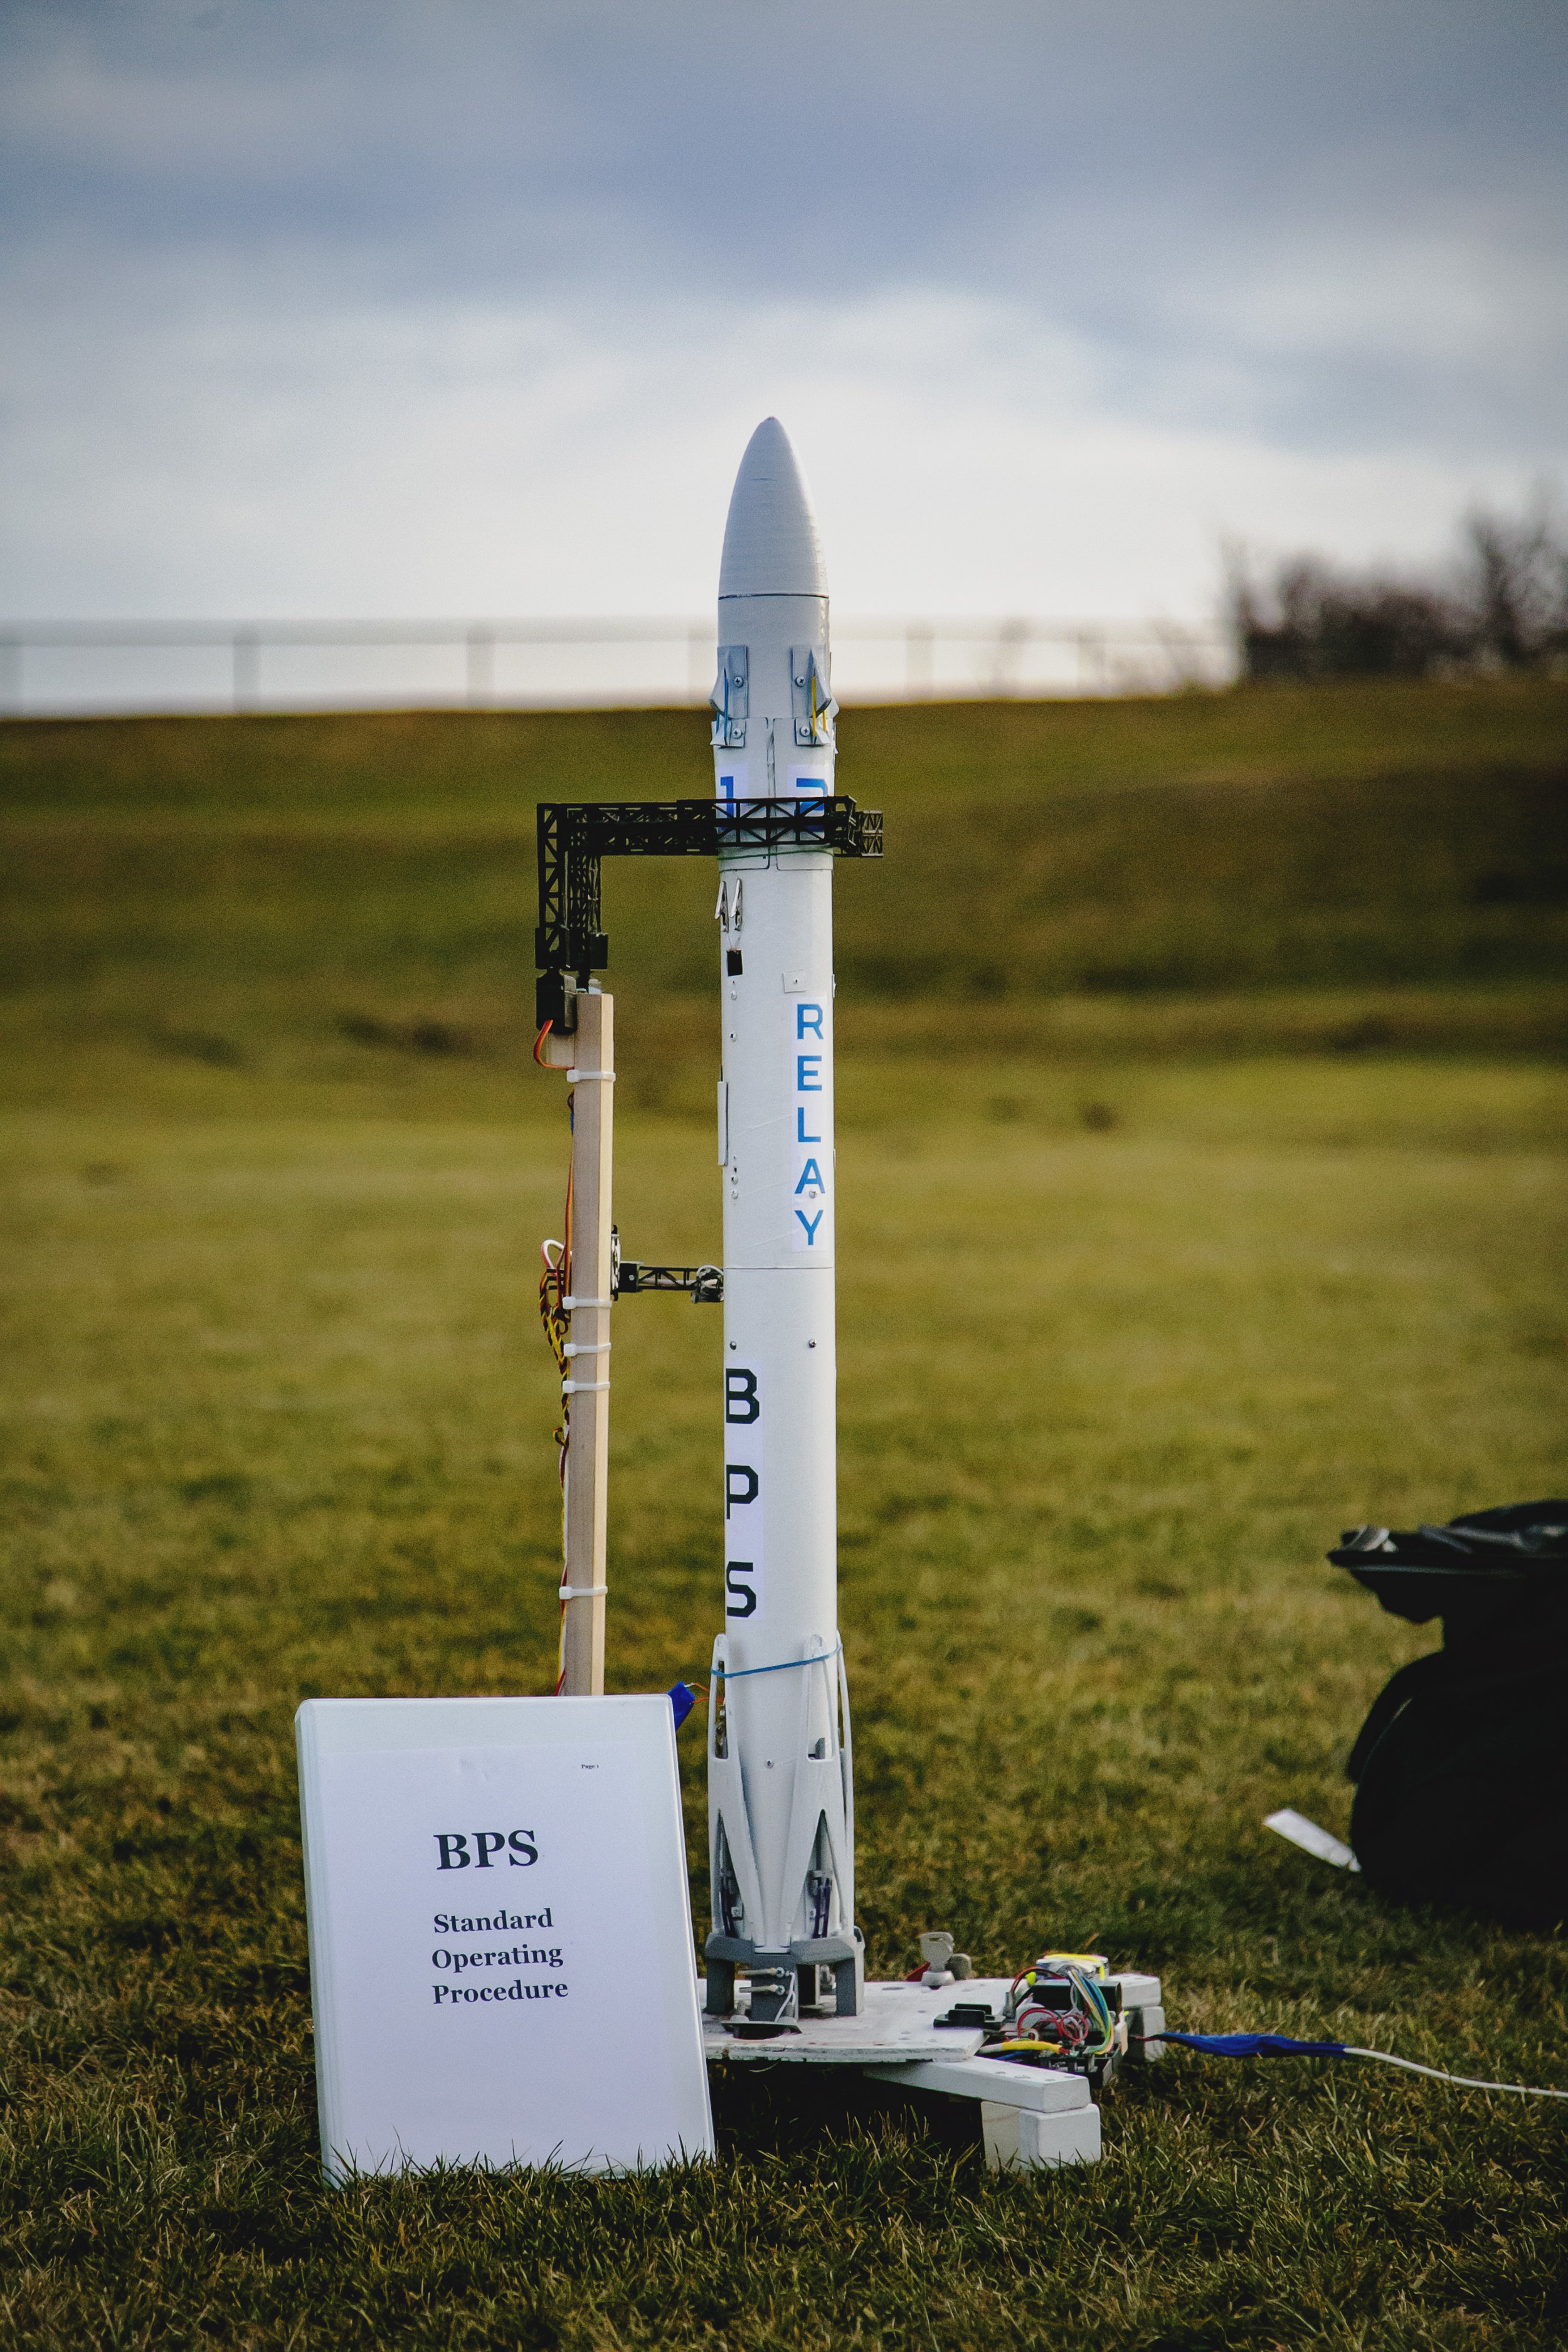 Relay F2 waits on the pad, next to the preflight and launch checklist binder